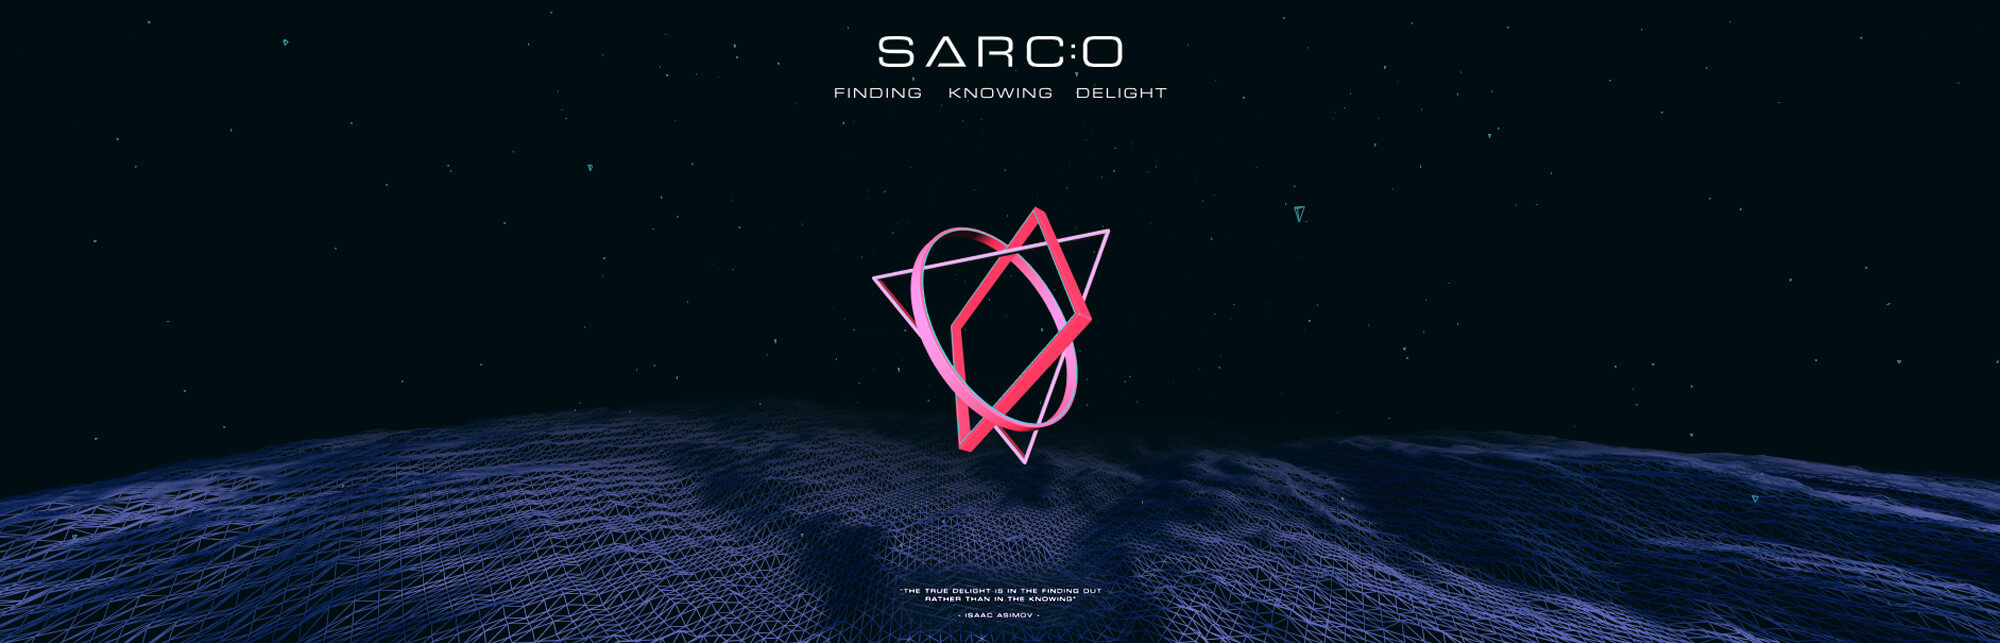 Sarco_Web_Cover